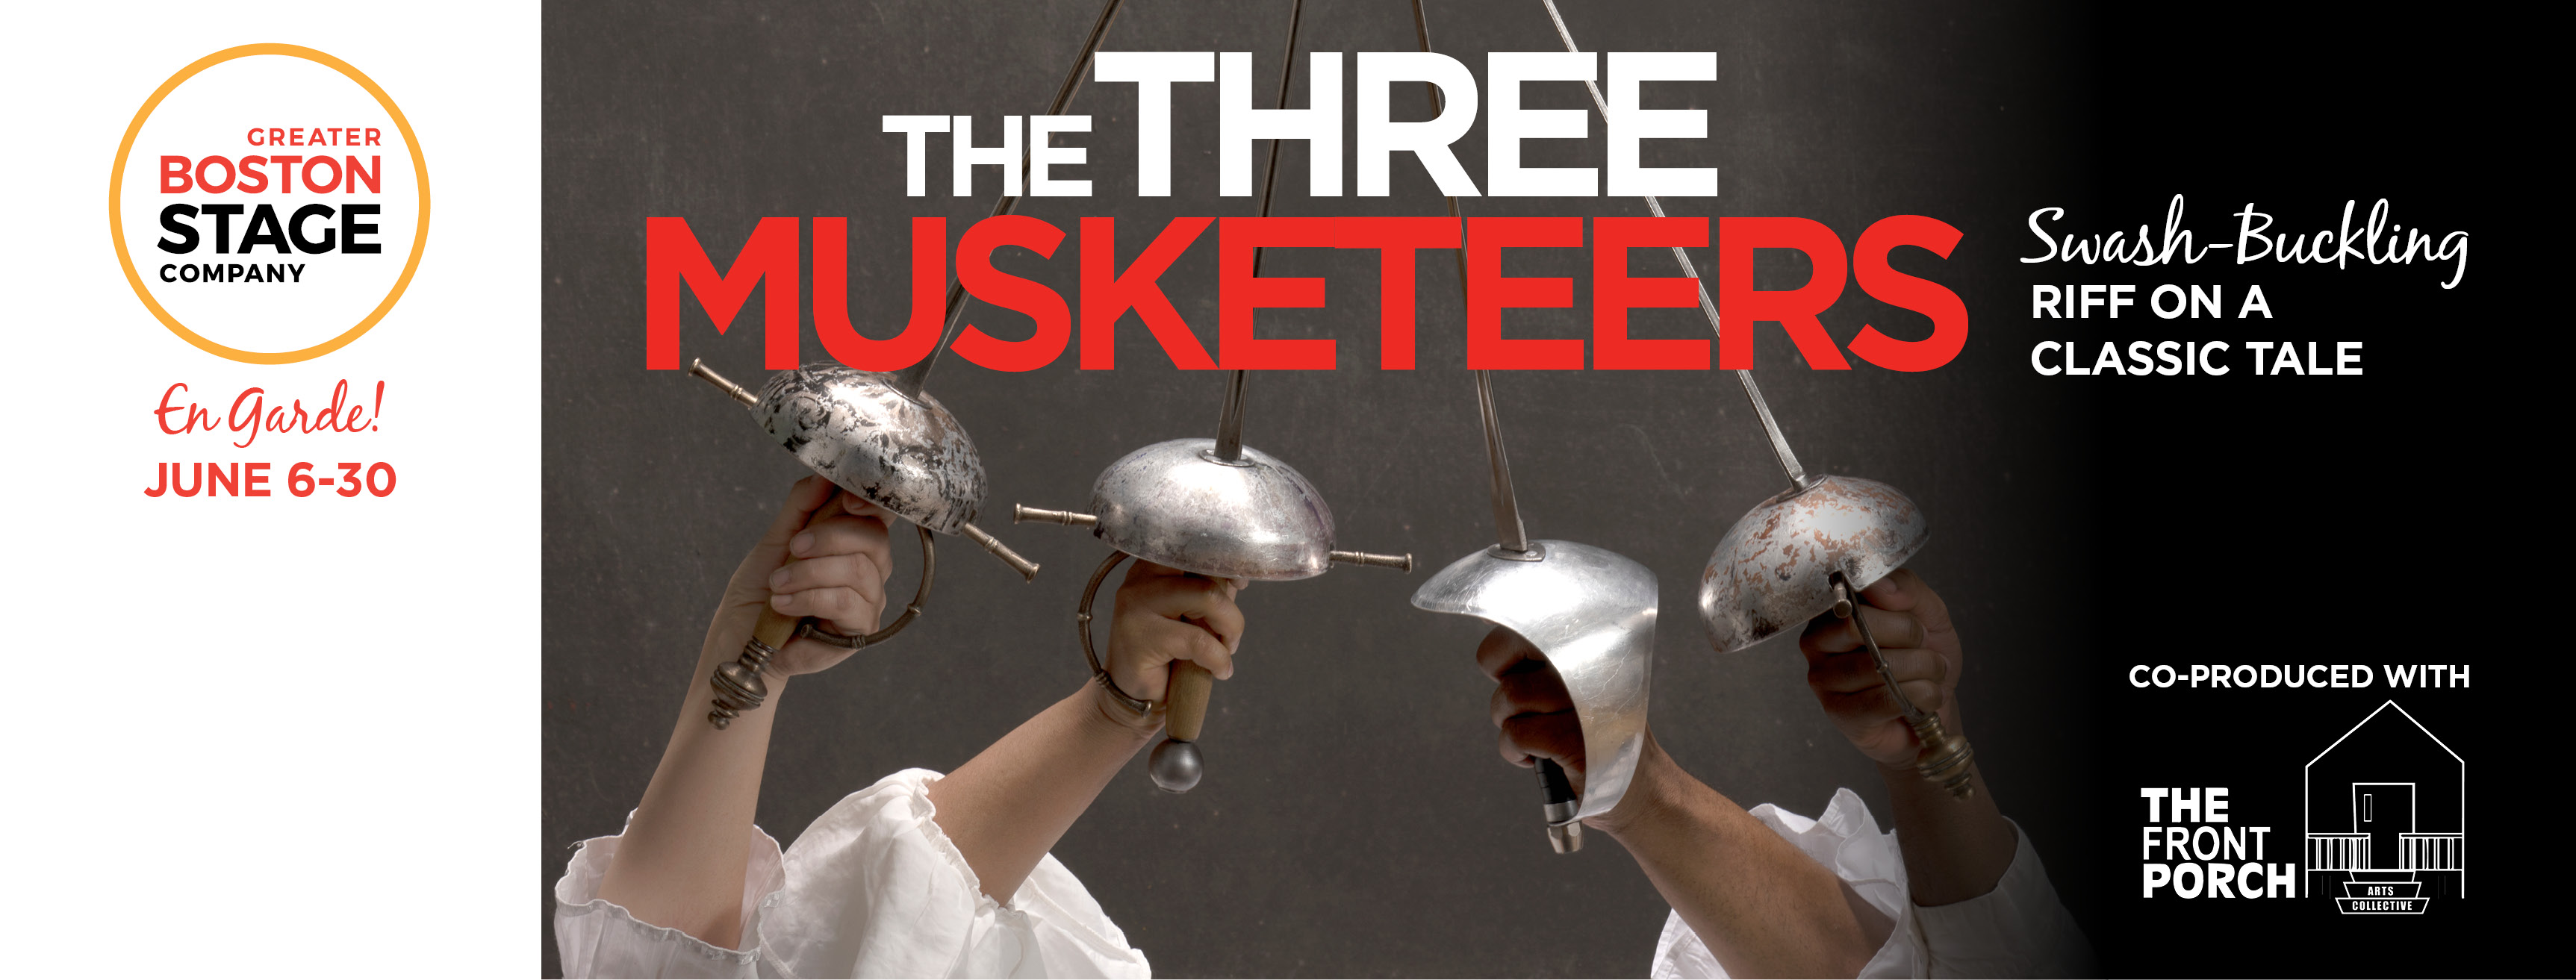 The Three Musketeers!